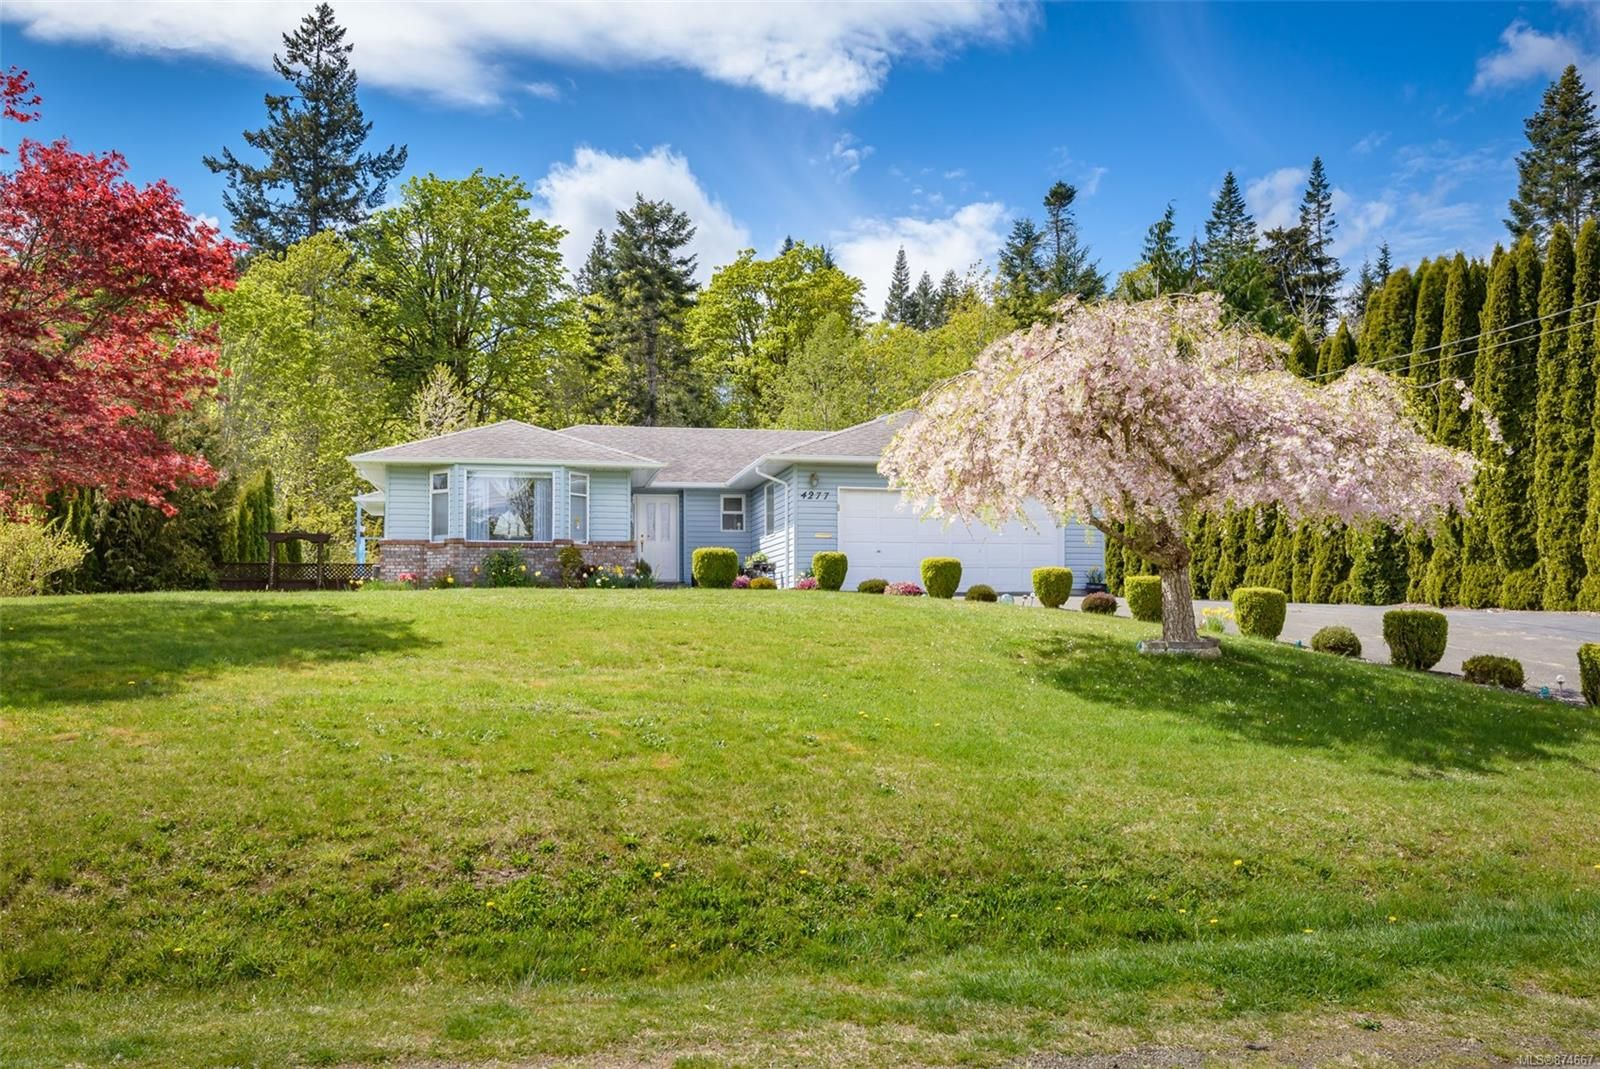 Main Photo: 4277 Briardale Rd in : CV Courtenay South House for sale (Comox Valley)  : MLS®# 874667